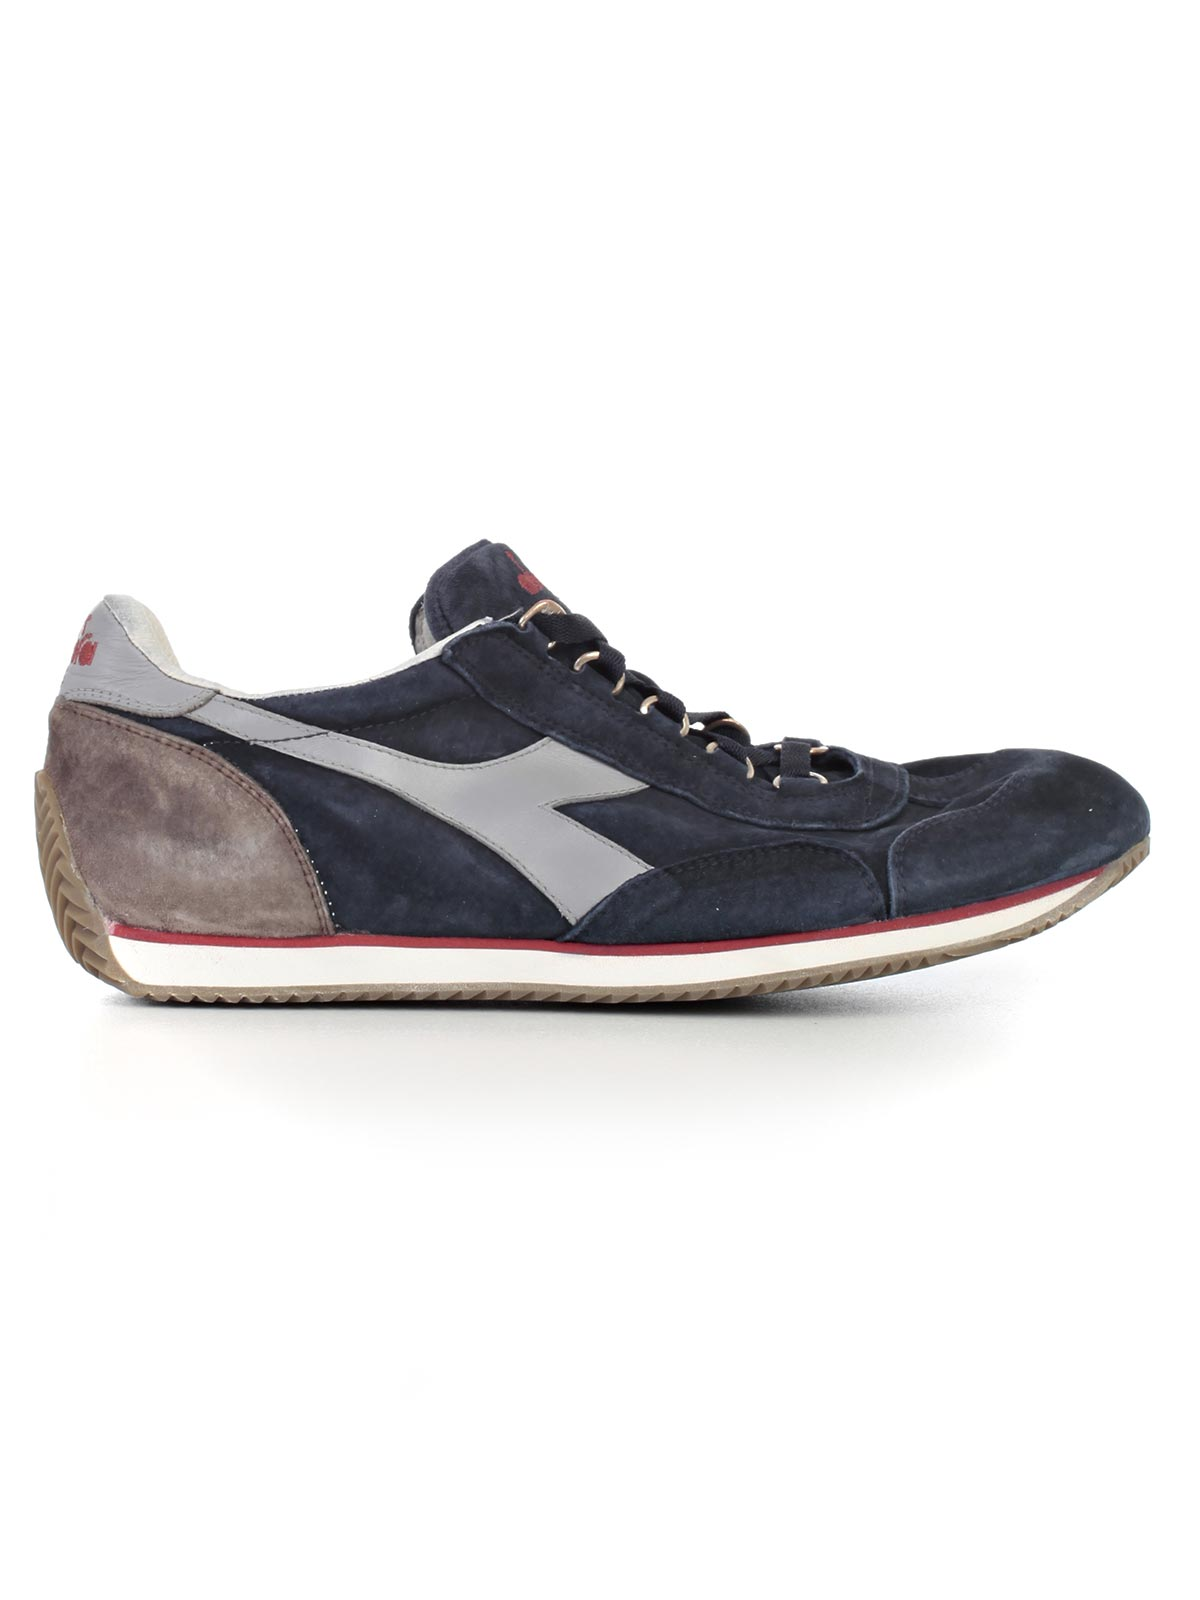 Picture of DIADORA FOOTWEAR SCARPA EQUIPE S. SW